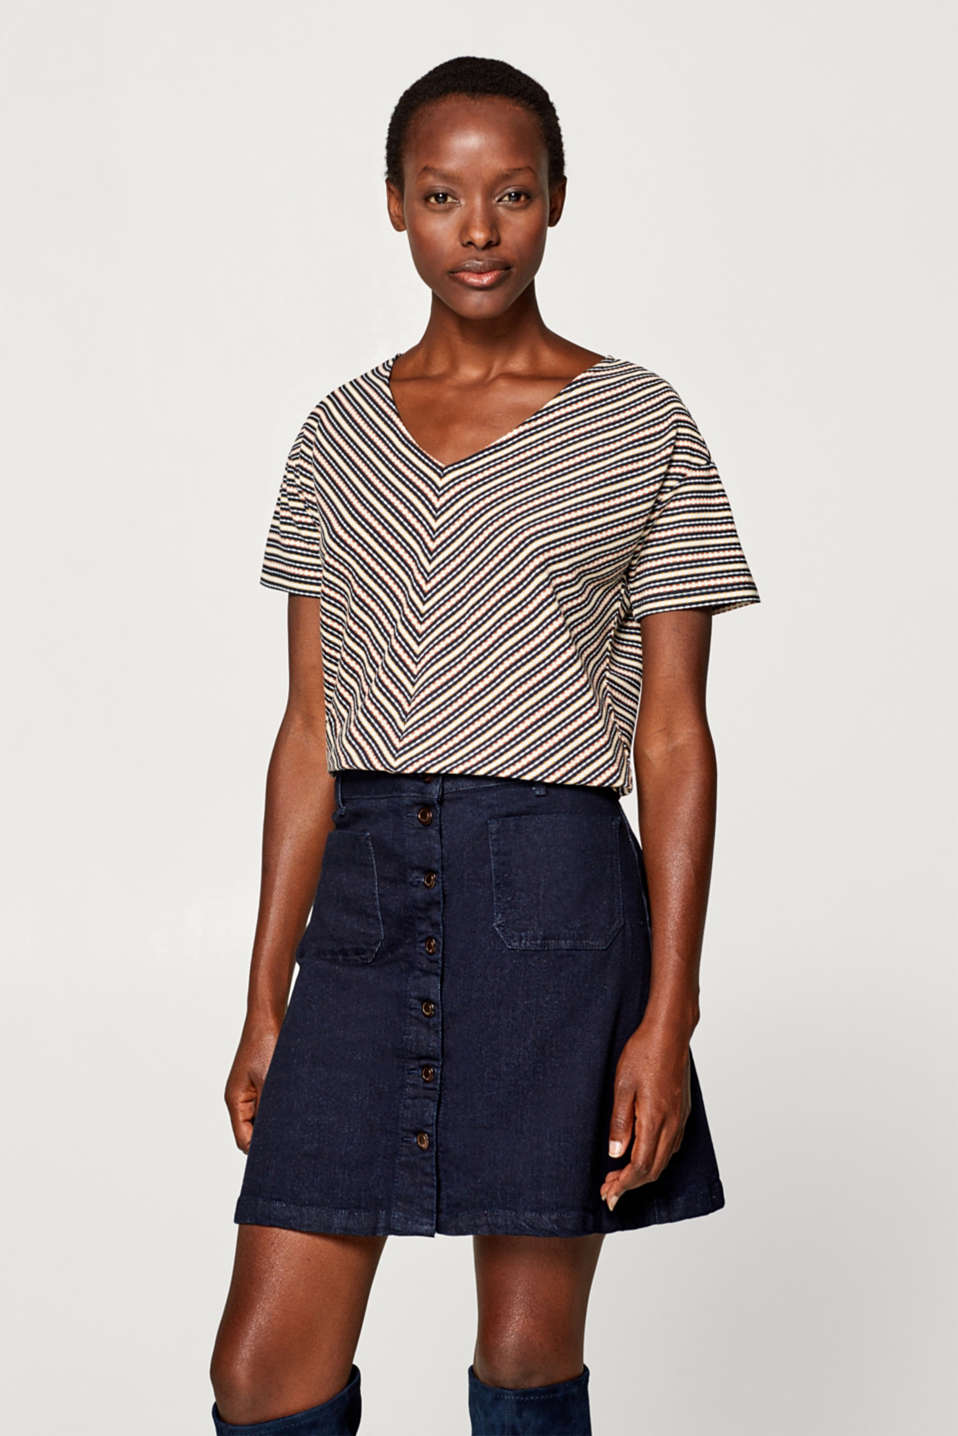 Esprit - Top with a jacquard pattern